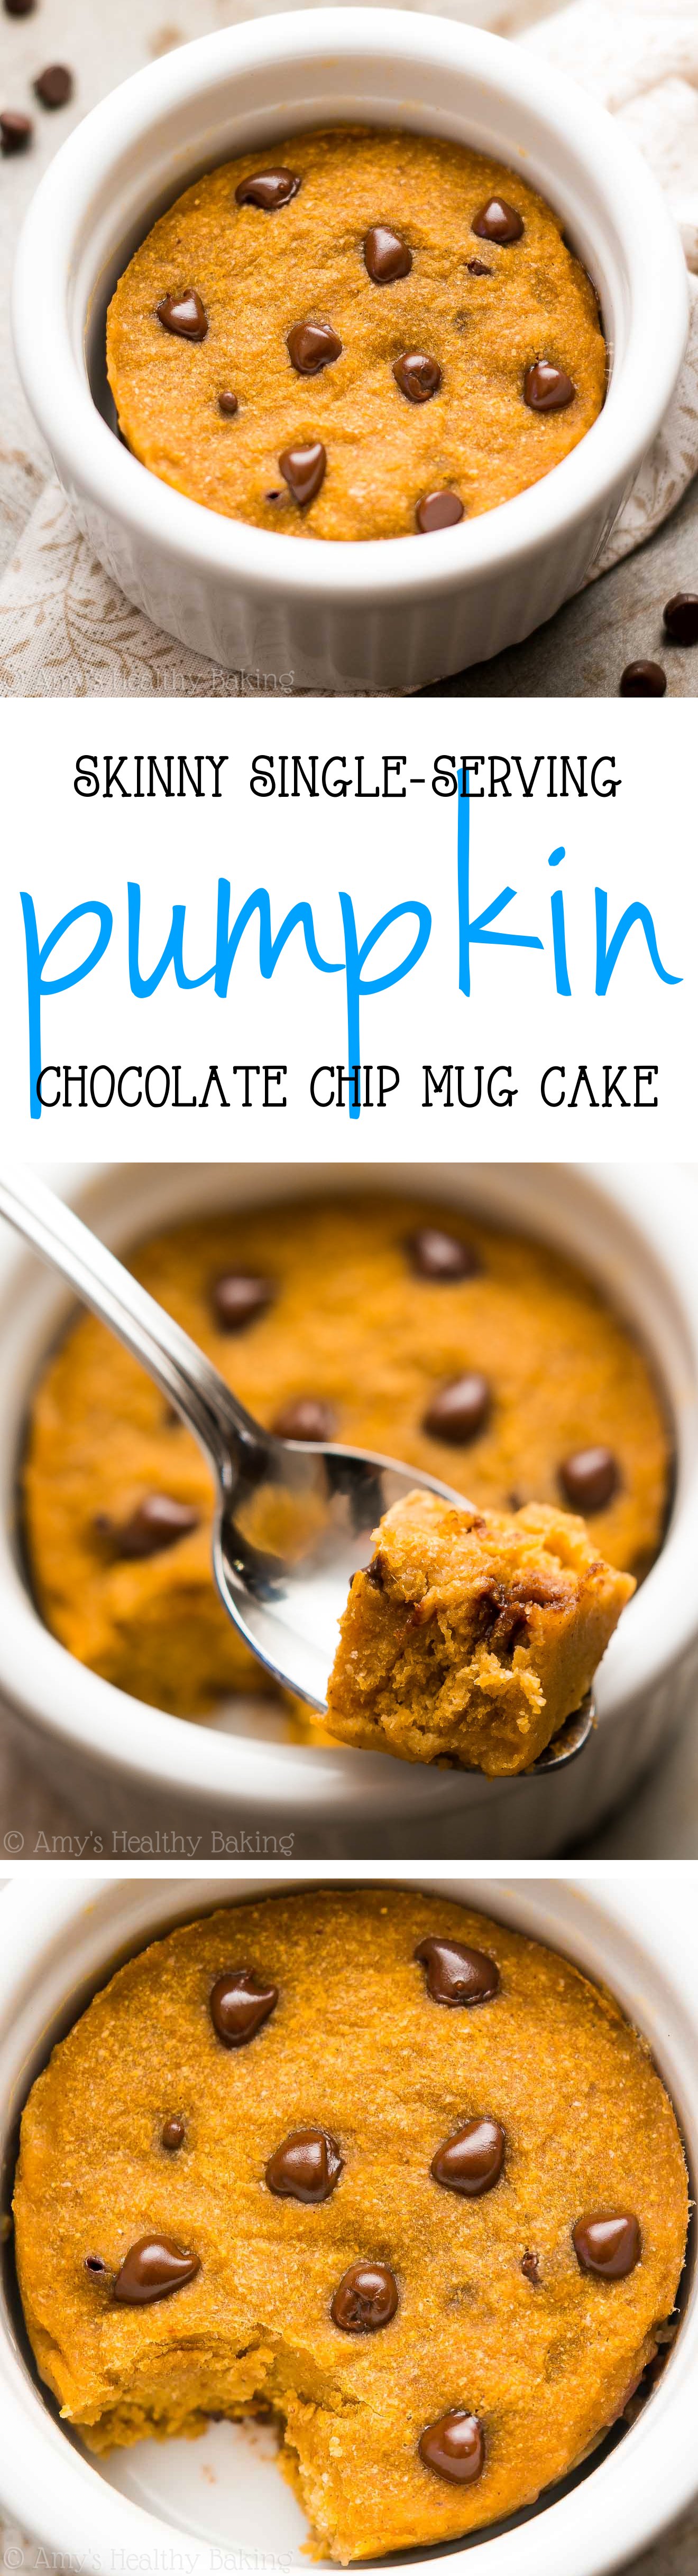 The BEST Skinny Single-Serving Pumpkin Chocolate Chip Mug Cake -- an easy recipe that's practically healthy enough for breakfast! Just 124 calories!